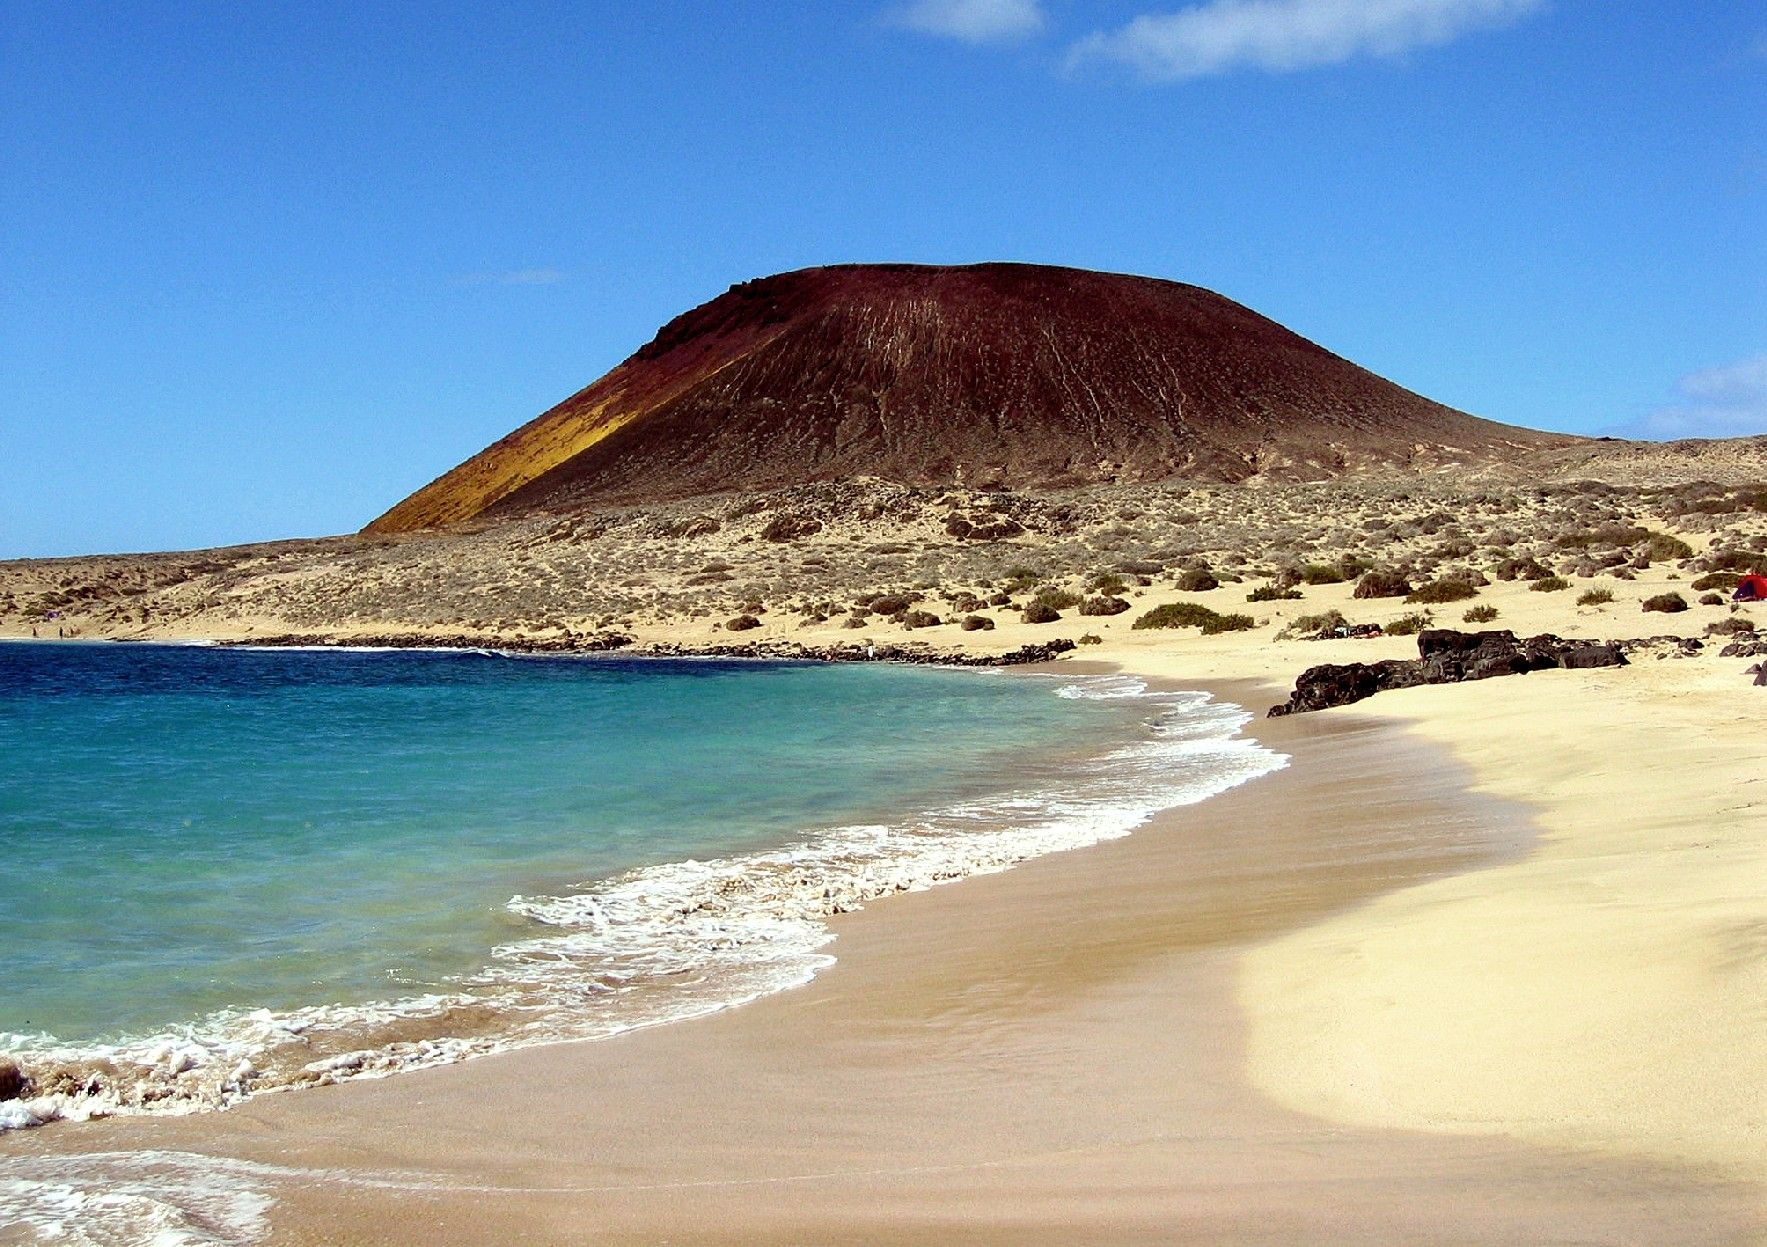 How to get to La Graciosa